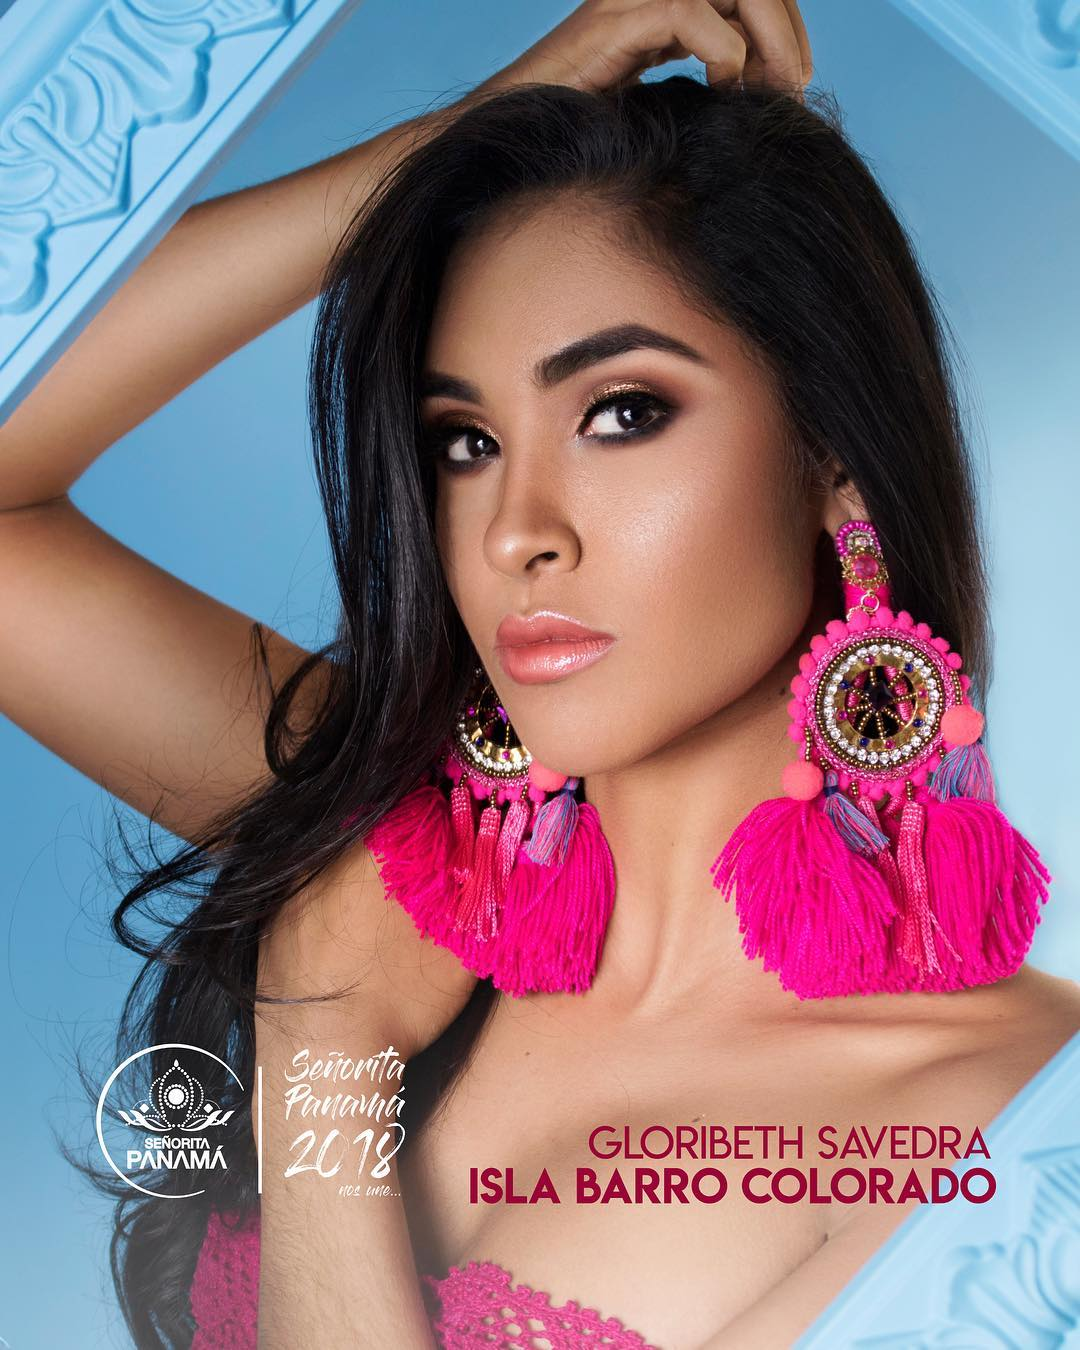 señorita miss colombia 2018 candidates candidatas contestants delegates Miss Barro Colorado Gloribeth Saavedra